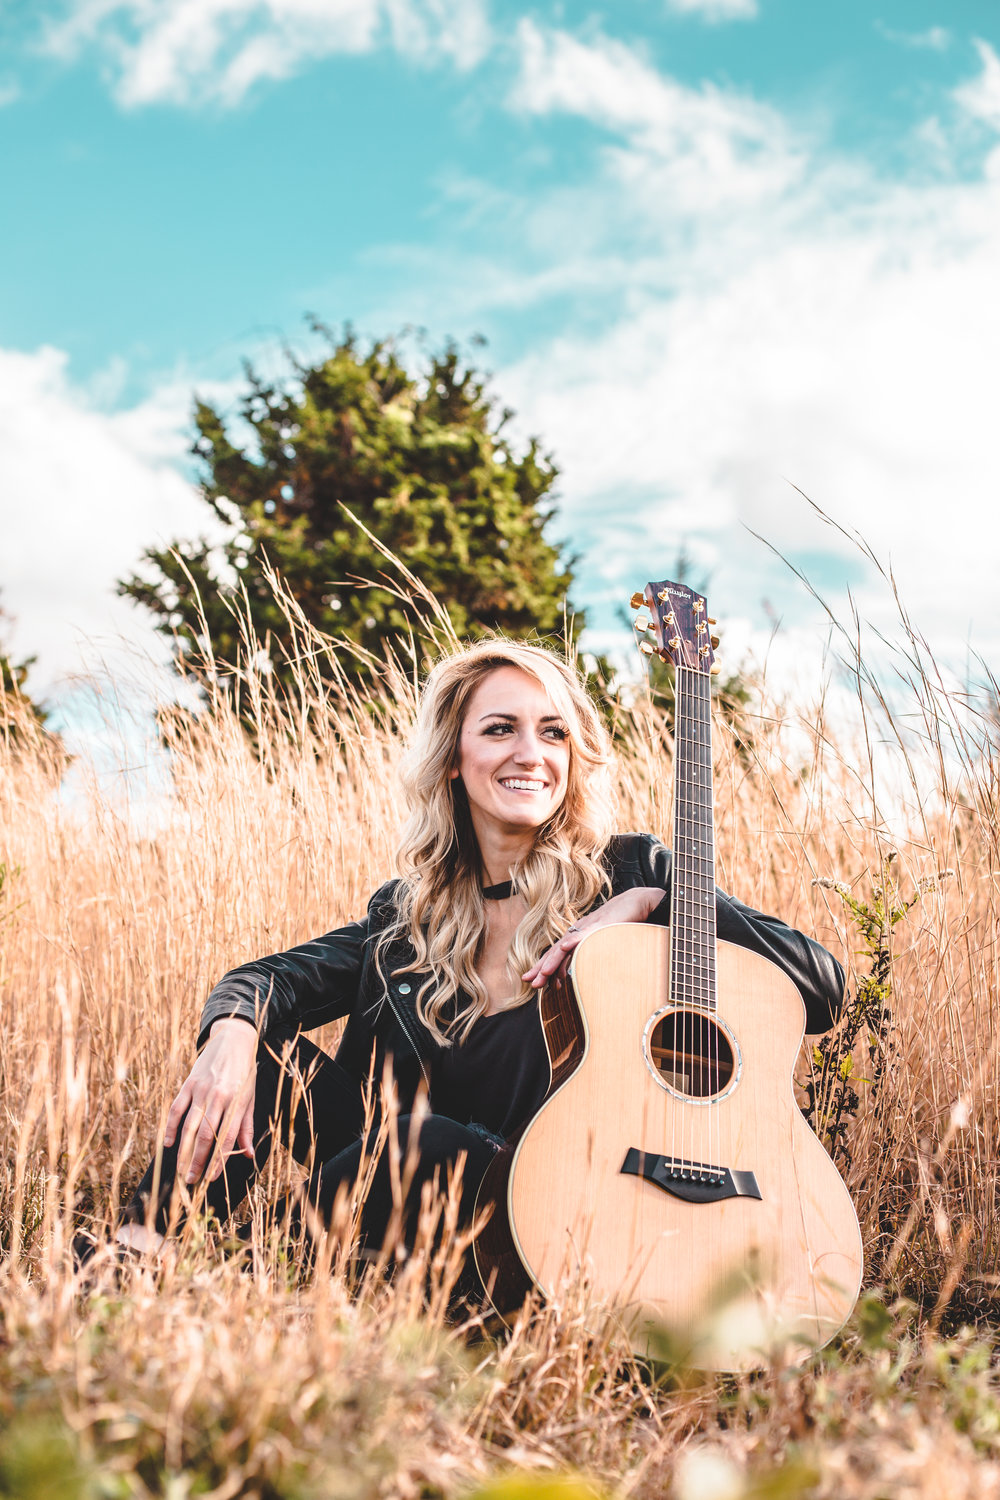 WILDEE is a country music singer/songwriter born and raised in Temecula, CA and currently living in Nashville, TN. Her roots trace back to Southern Louisiana where she has developed her love for country music from her grandfather and was given her middle name